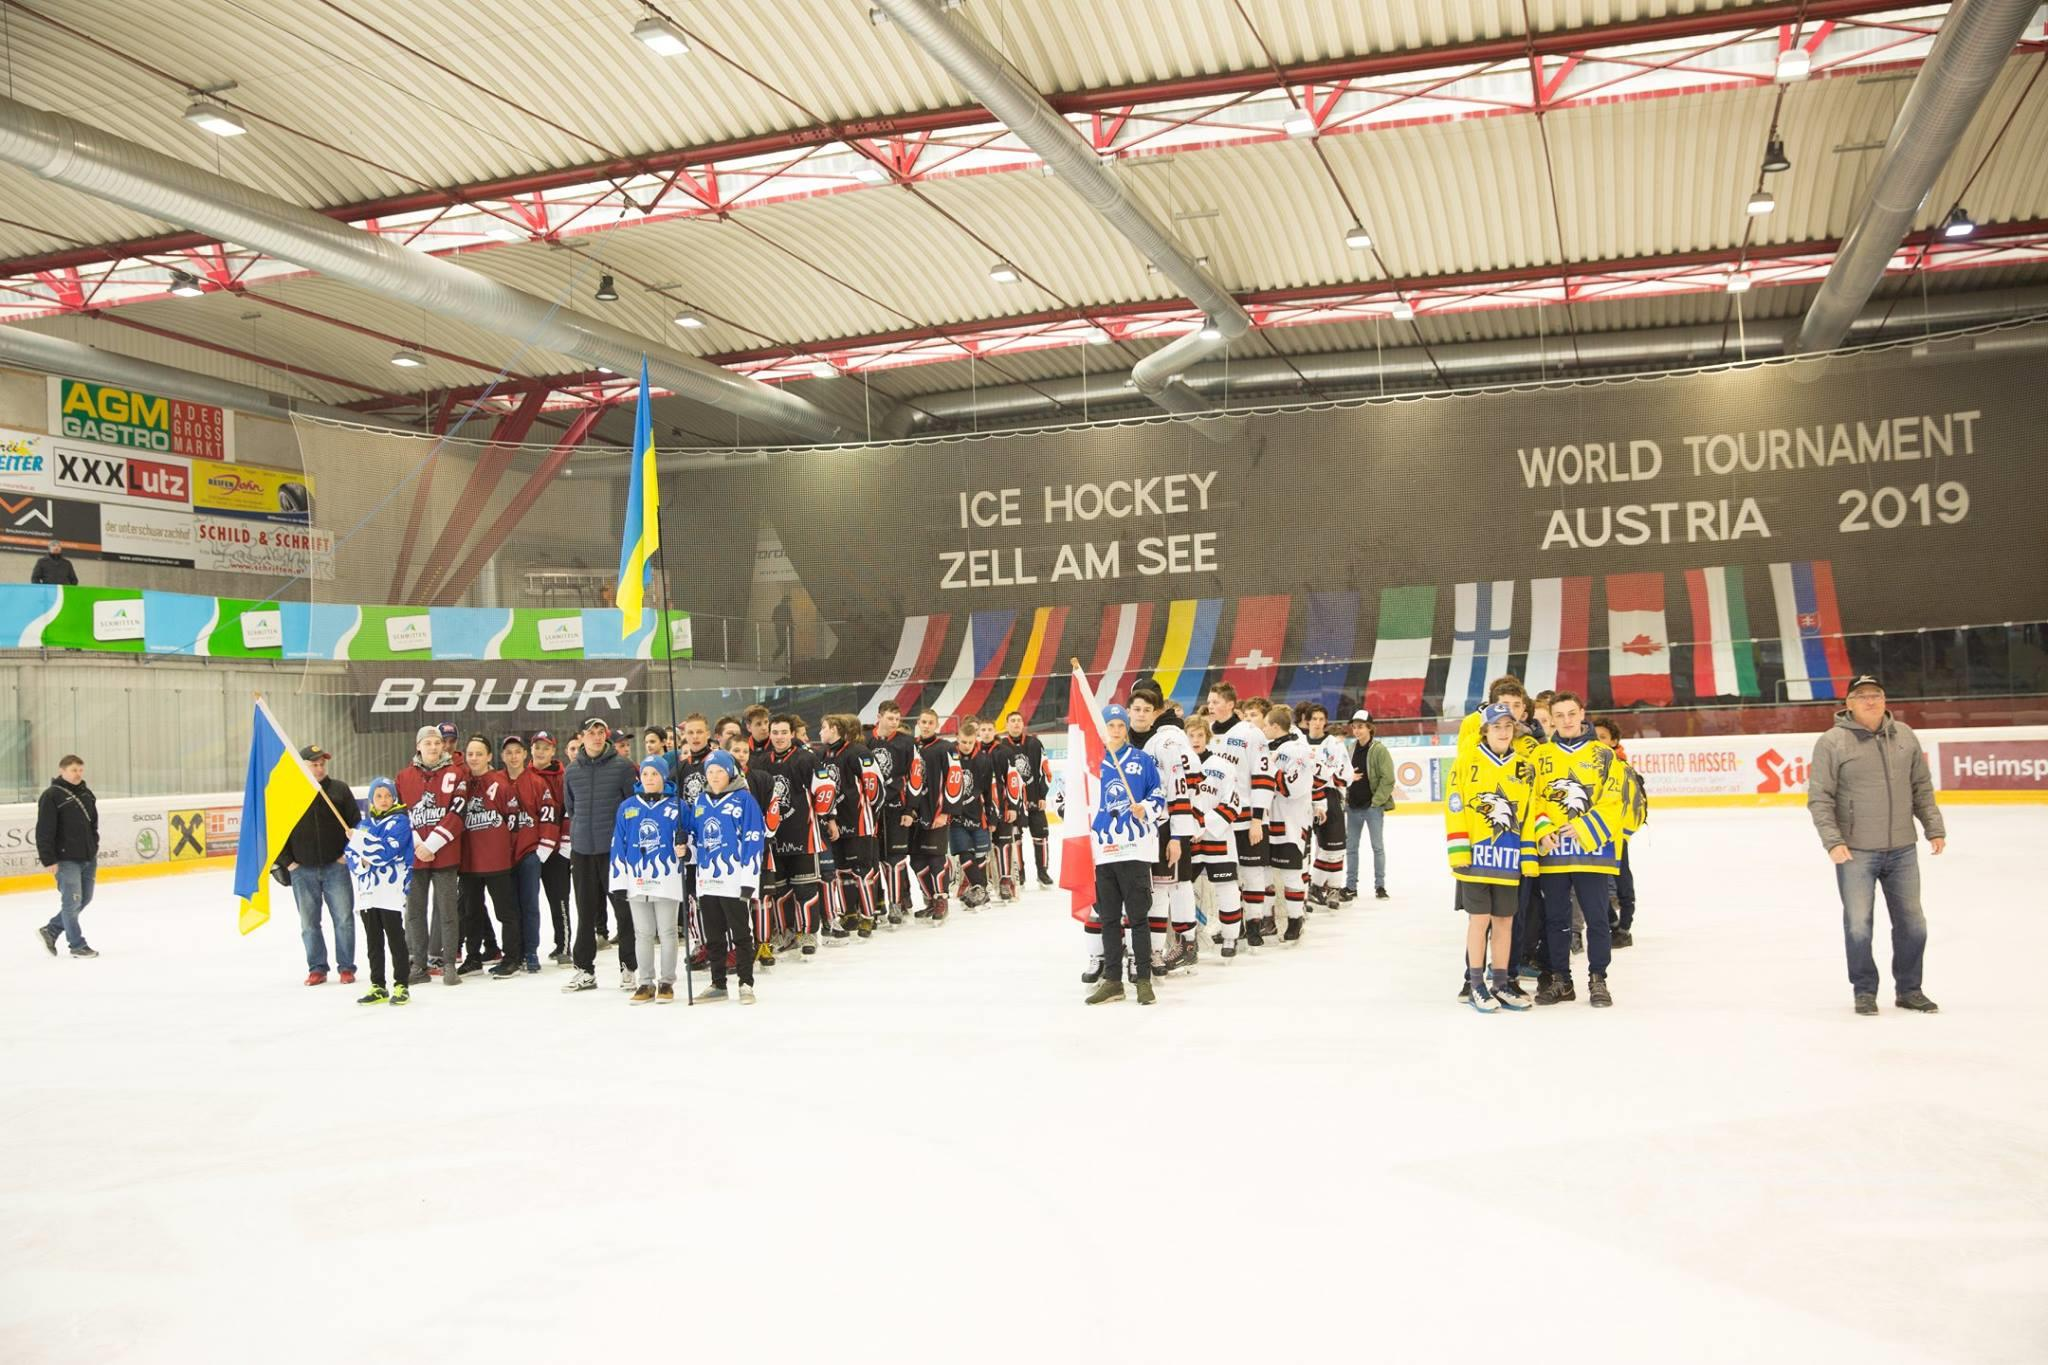 Icehockey World Tournament 2019 - 16/04/2020